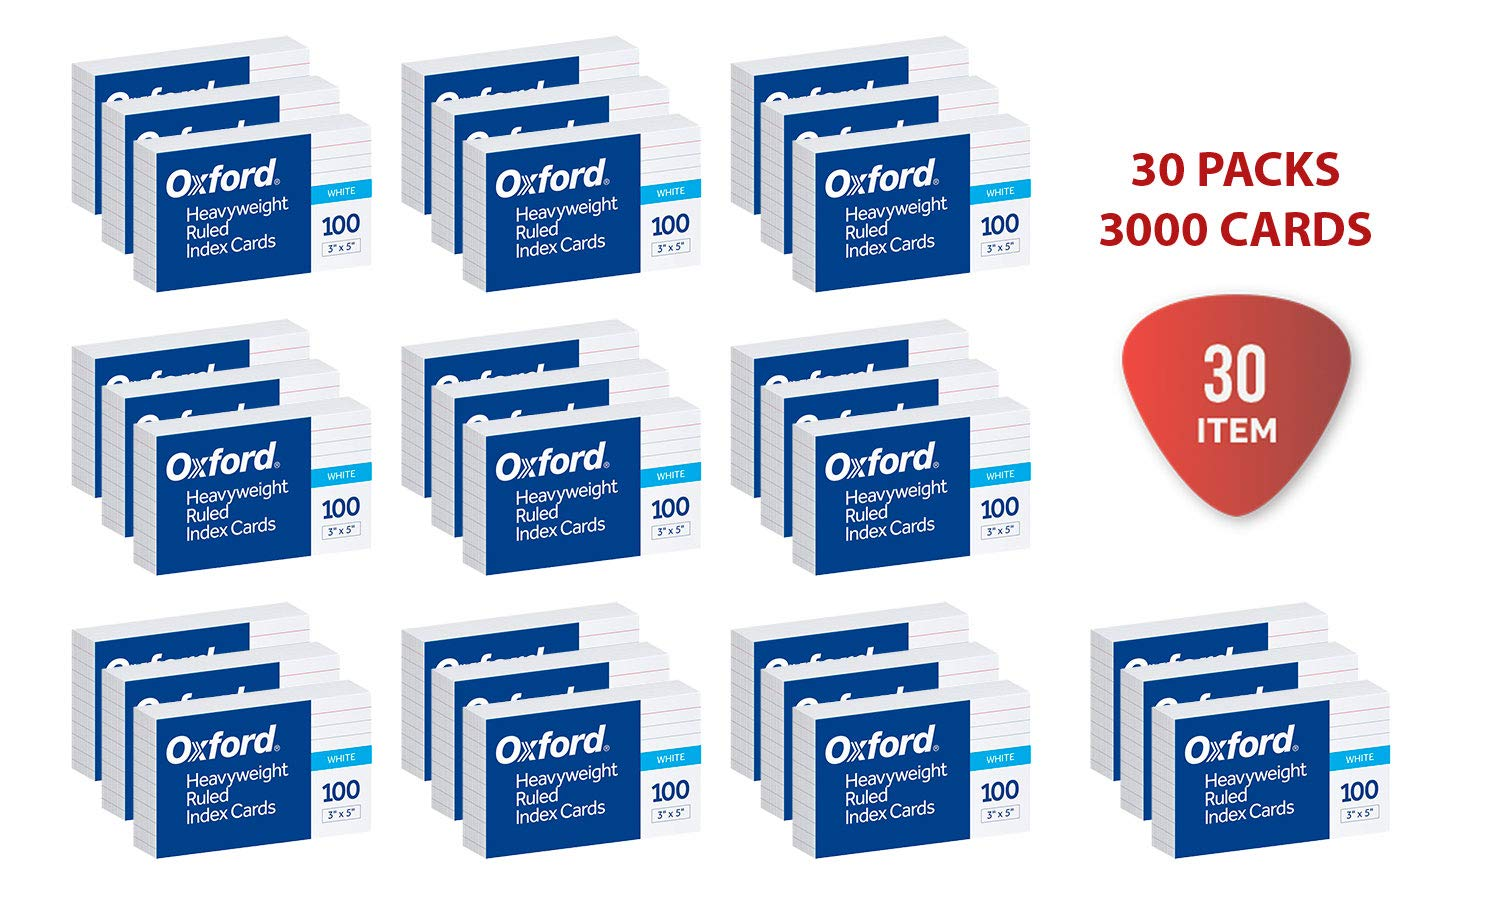 Oxford Heavyweight Ruled Index Cards, 3'' x 5'', White, 100 Per Pack (63500), 30 Packs of 100 cards by Oxford